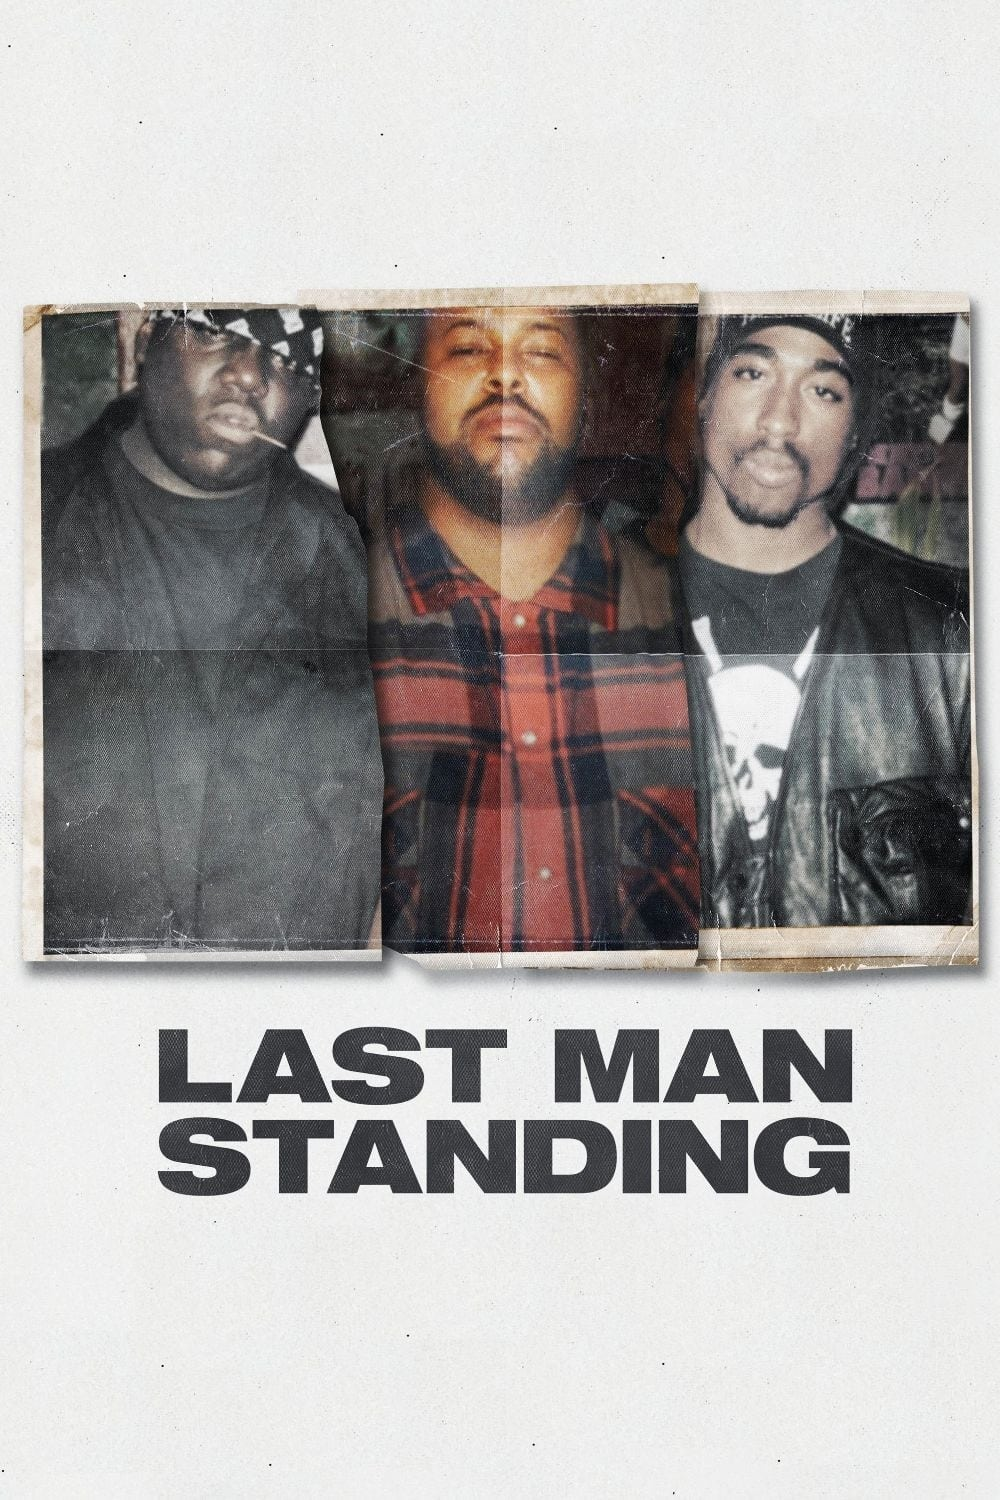 Last Man Standing: Suge Knight and the Murders of Biggie and Tupac